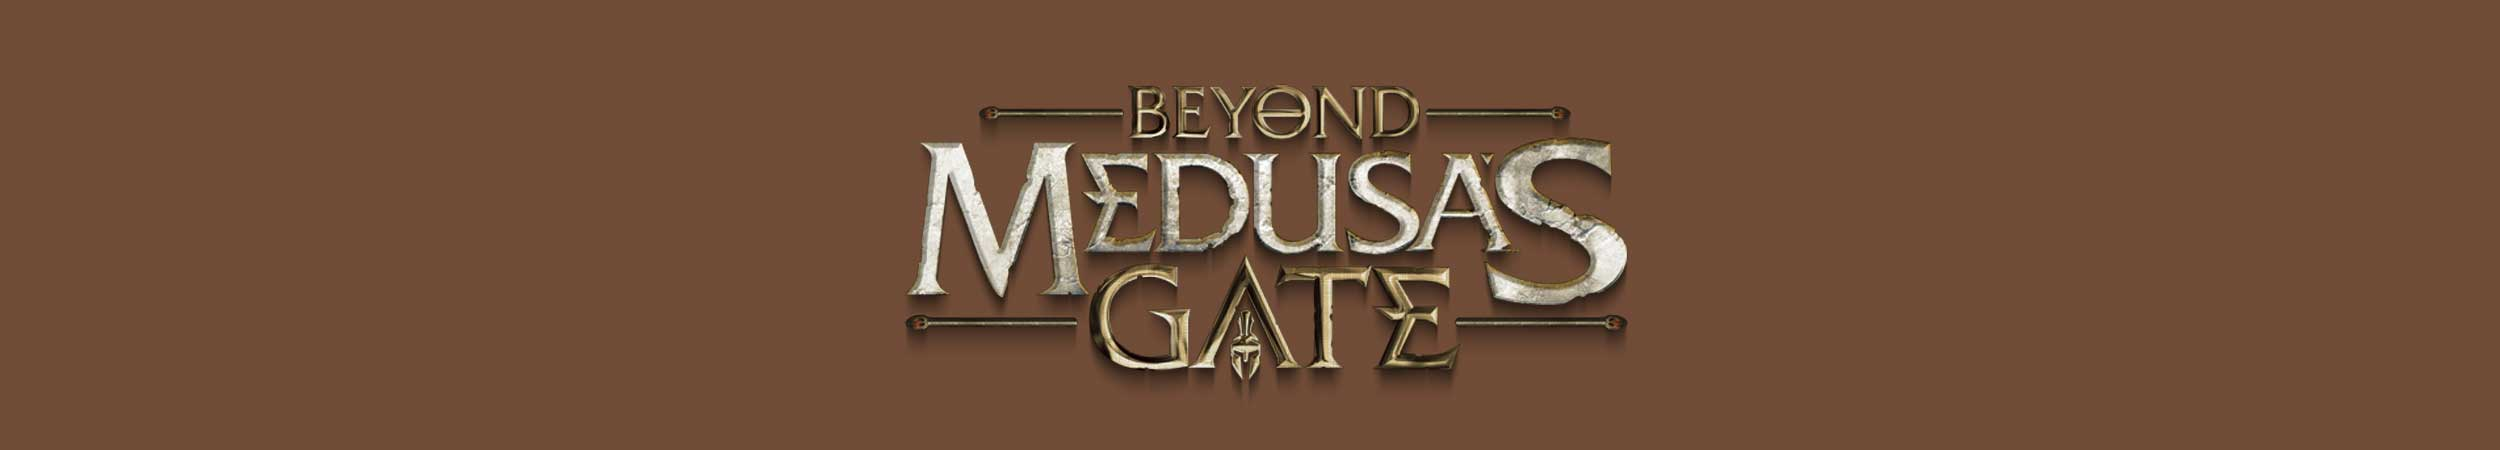 escape game beyond medusa gate lyon